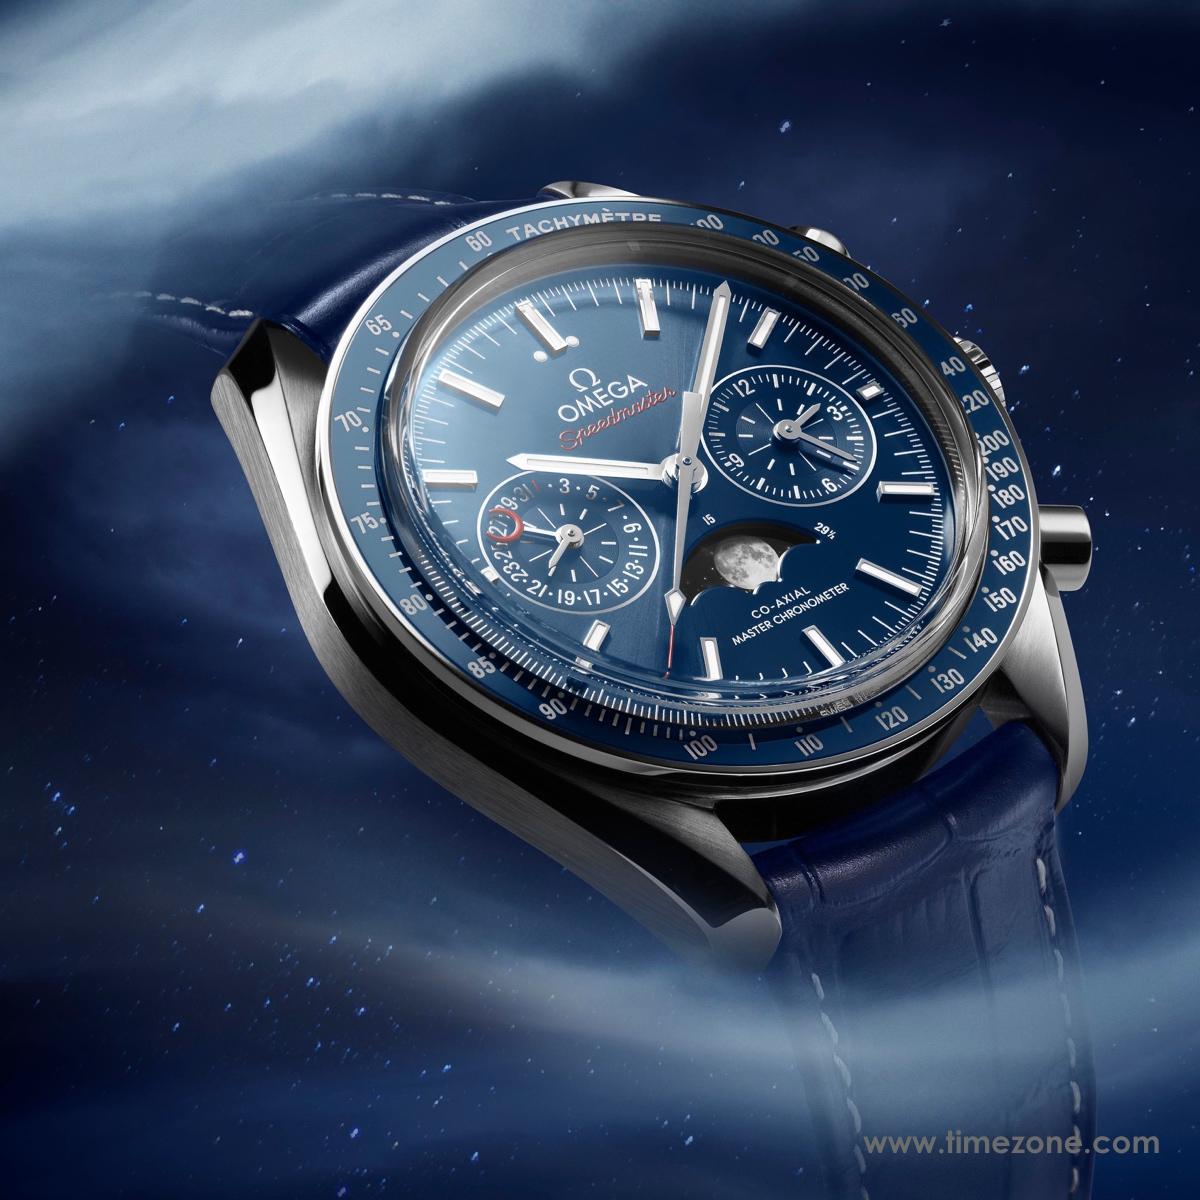 Speedmaster Moonphase, Omega Speedmaster Moonphase Chronograph Master Chronometer, Omega Speedmaster Moon, Speedmaster Moonphase 9904, Omega calibre 9904, caliber 9904, Omega 9904